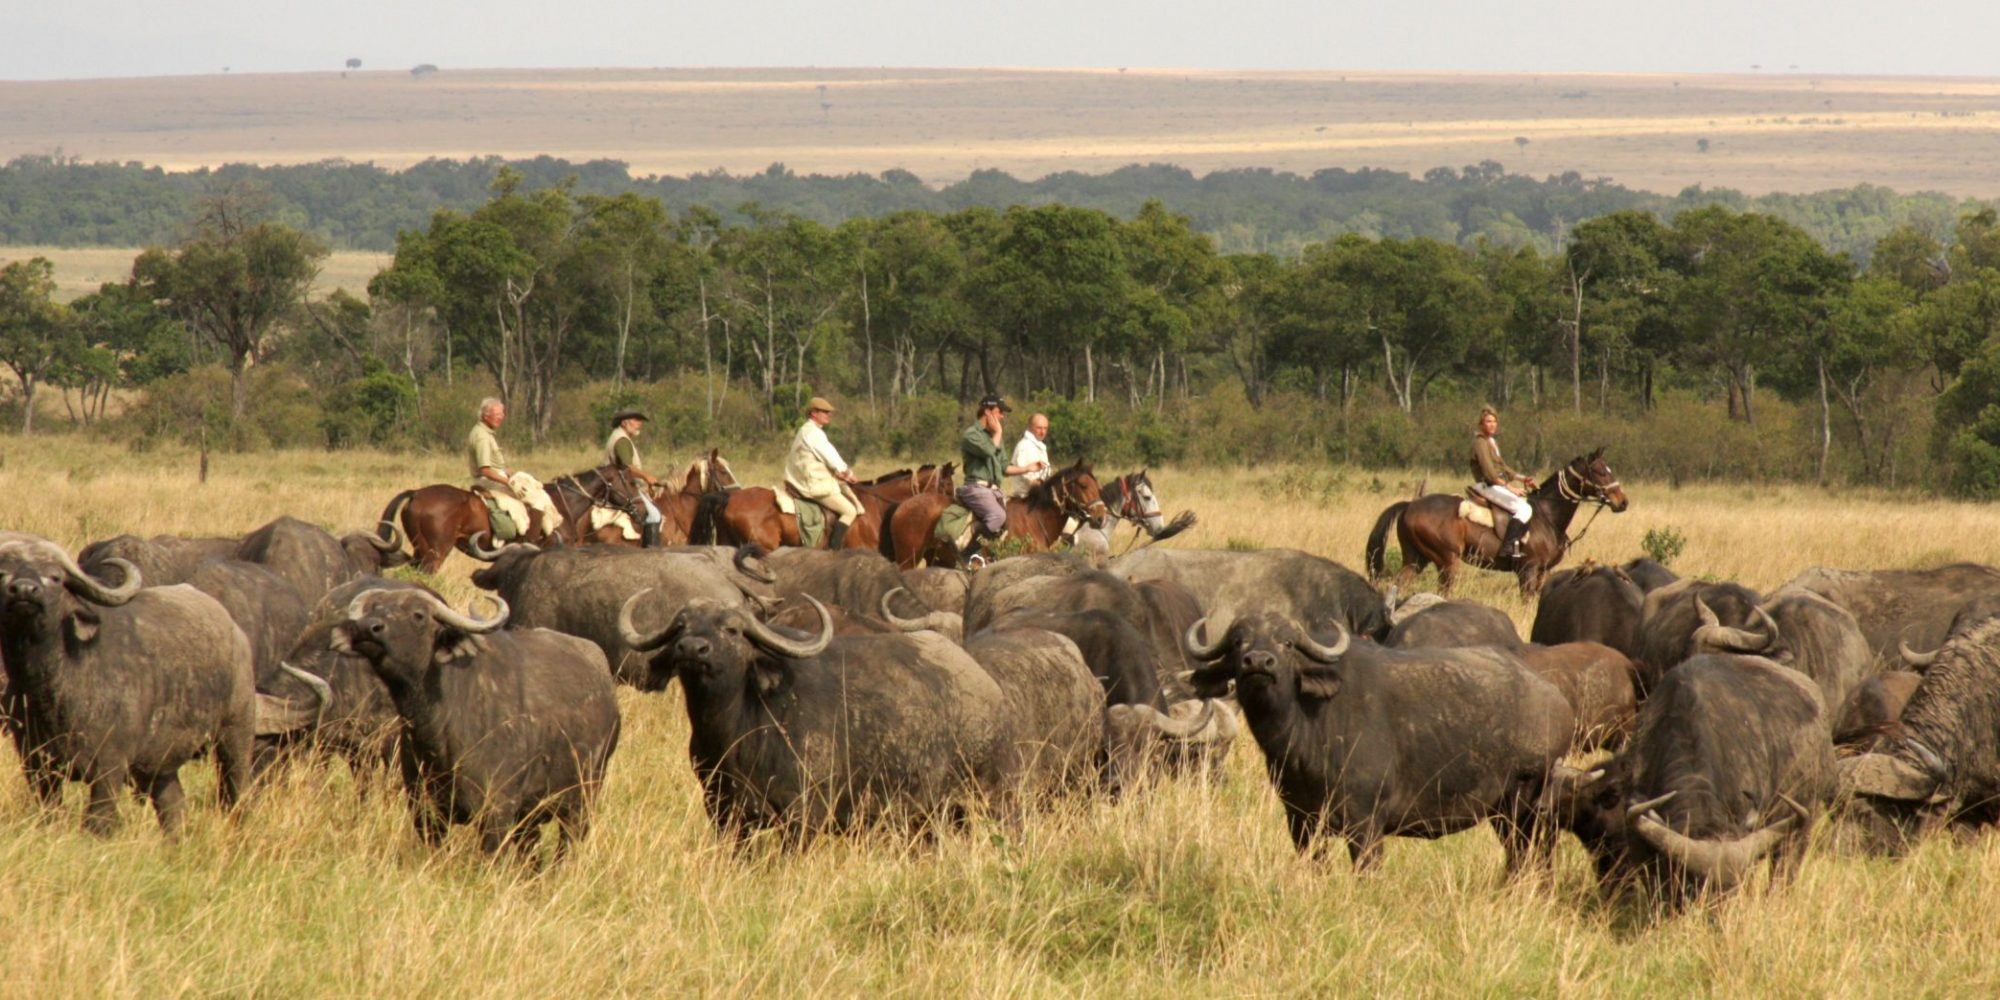 Offbeat Safaris - Riding with buffalo in the Masai Mara